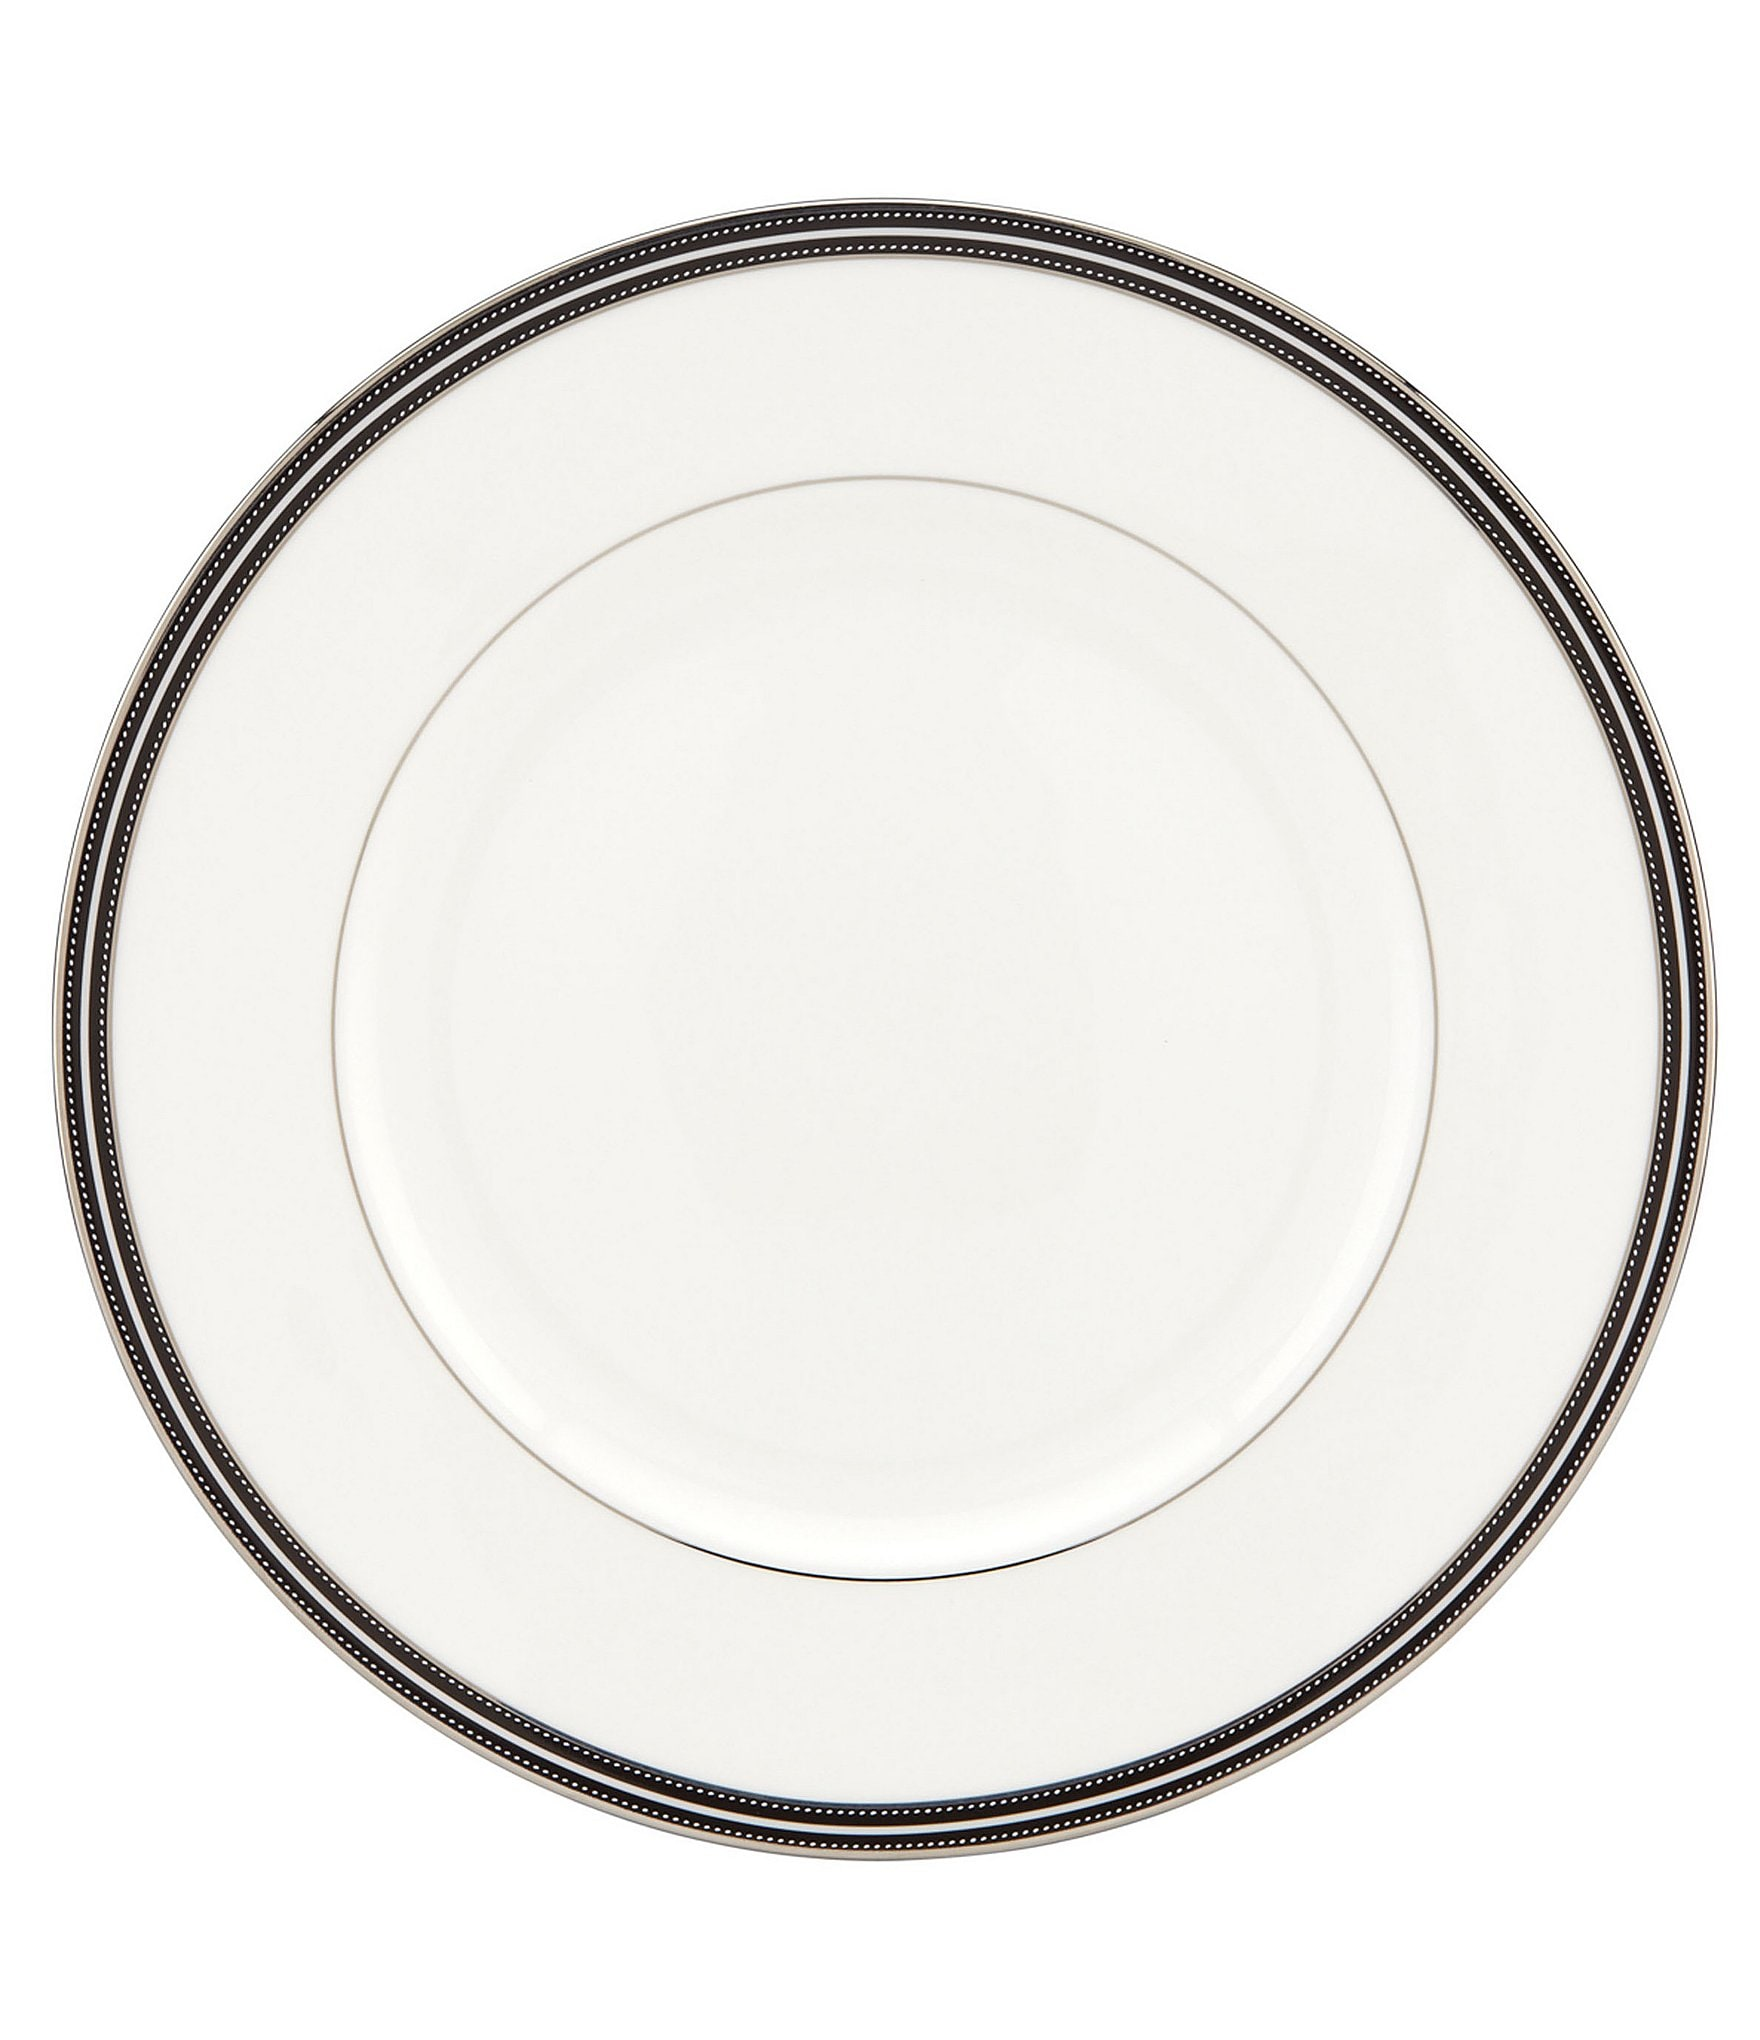 kate spade new york Casual Everyday Dinnerware Plates  Dishes \u0026 Sets | Dillards  sc 1 st  Dillard\u0027s & kate spade new york Casual Everyday Dinnerware: Plates  Dishes ...